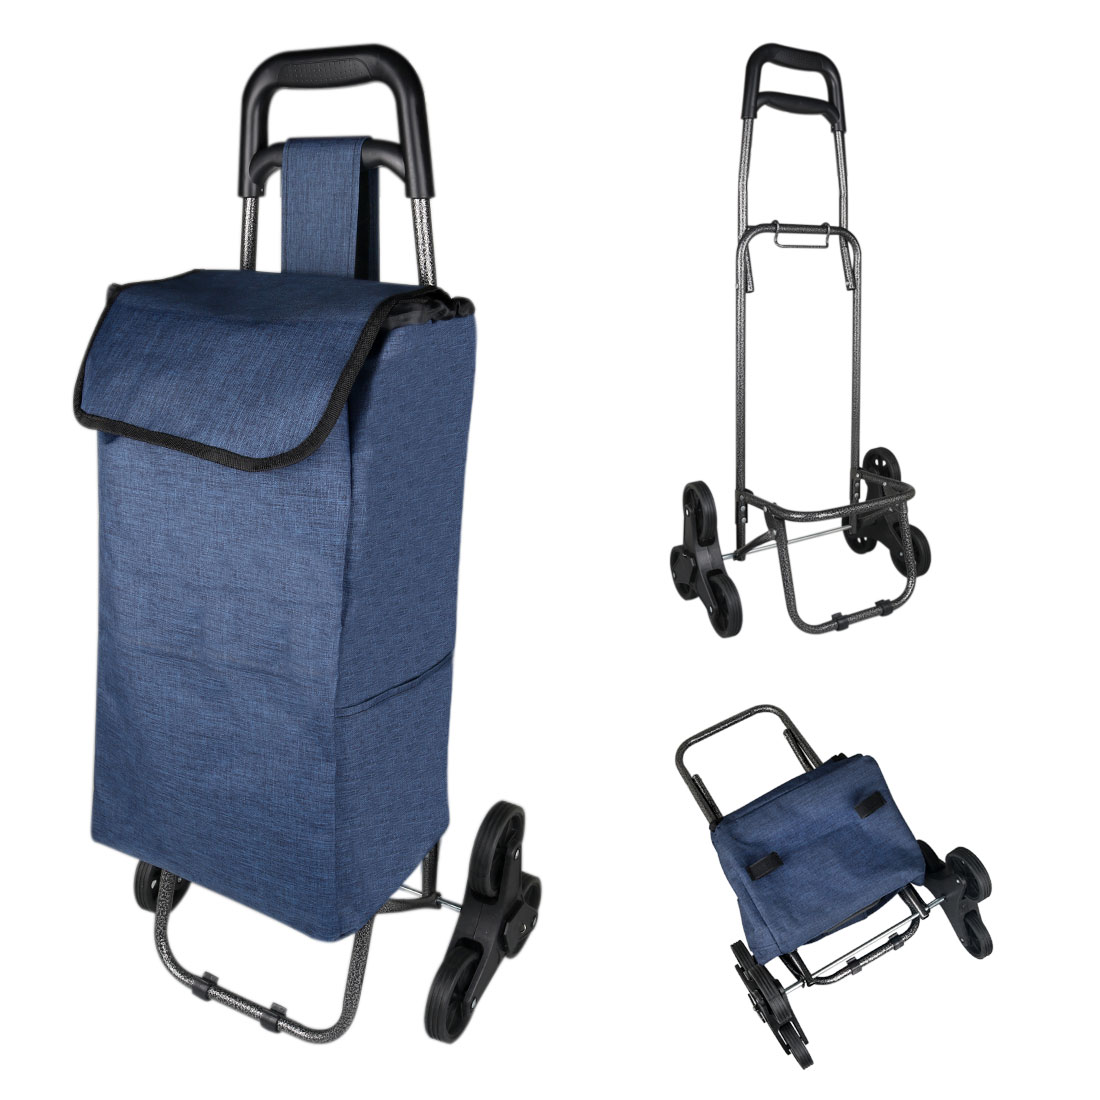 Folding Shopping Trolley Stair Climbing Cart with Bag for Grocery Laundry Utility Cart